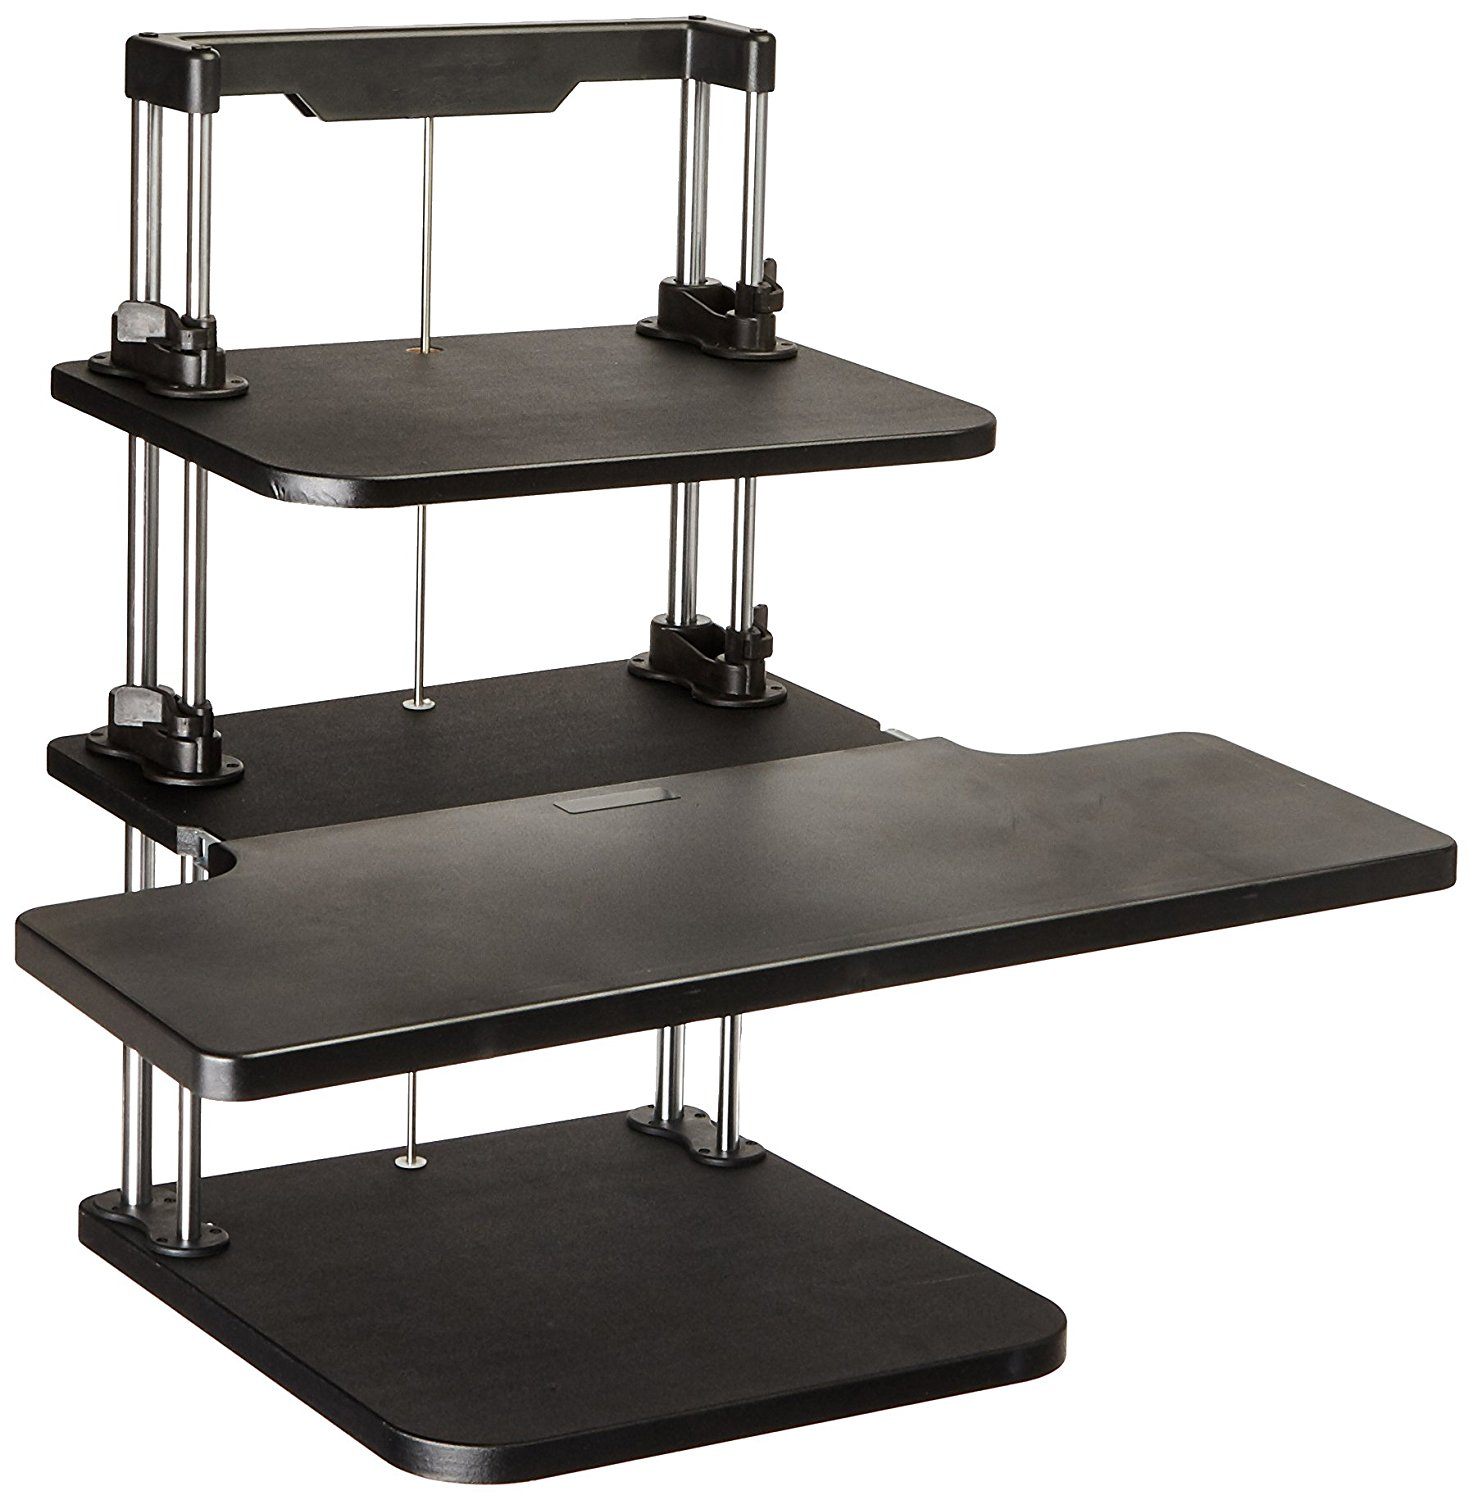 Pyle Sit Stand Desk, Height Adjustable Stand Up Desk, Computer/Laptop Stand Up Computer Workstation W/2 Adjustable Shelf Trays, Free Standing Desk - Black Finish (PSTNDDSK36)